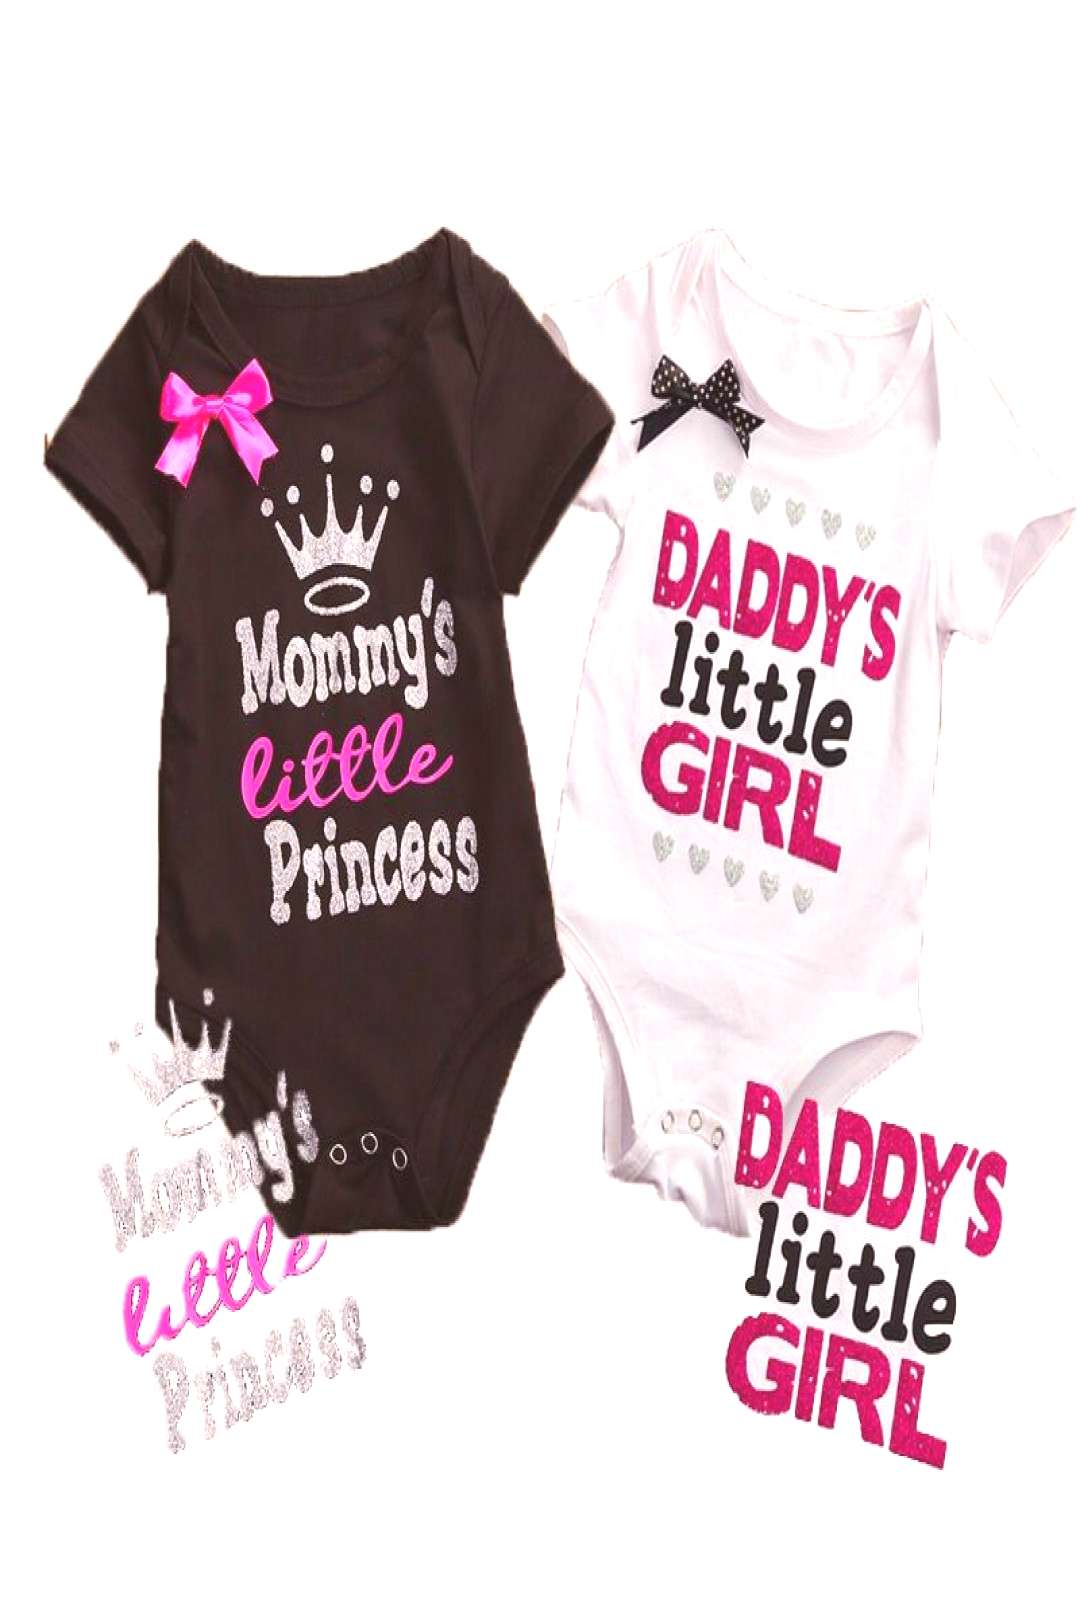 2017 Summer Letter Newborn Infant Baby Boys Girls Romper Jumpsuit Clothes Outfits - Buy it Now!